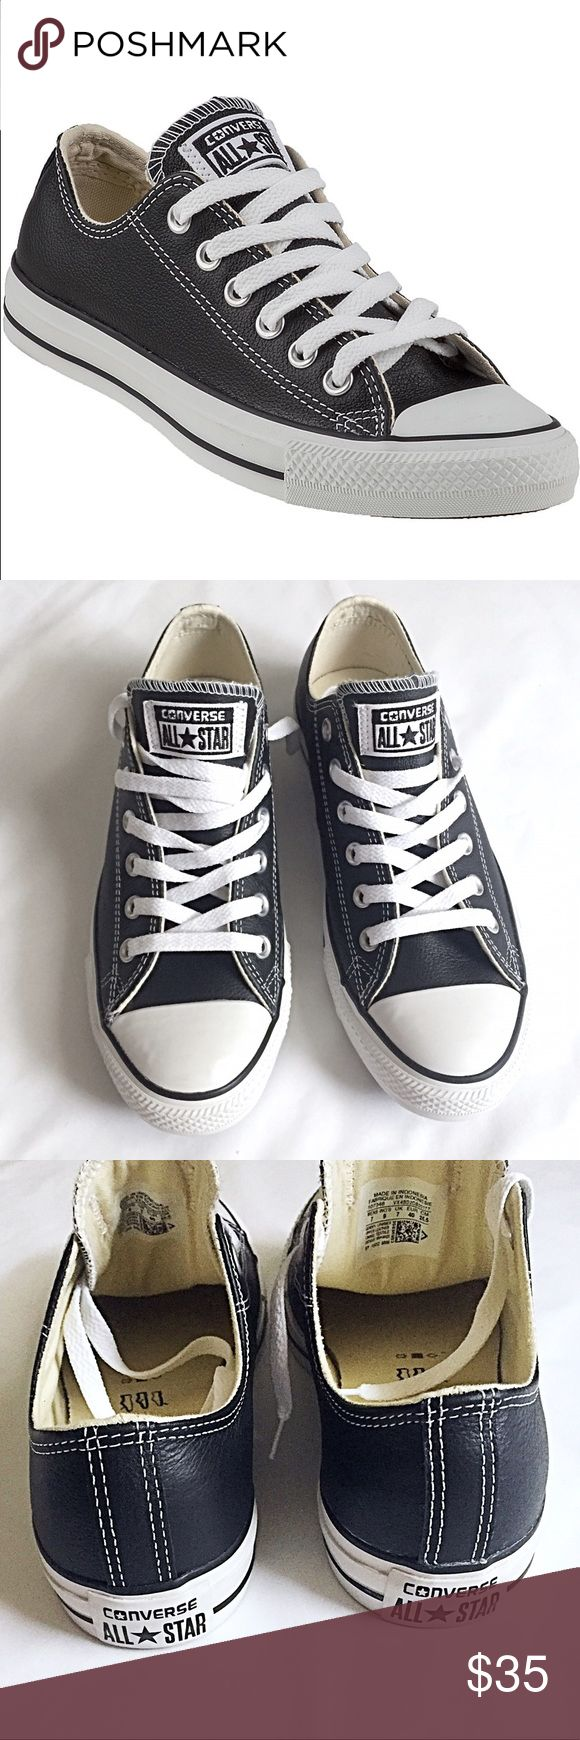 NWT Converse black leather. NWT Black leather converse sneakers. Unisex. Ladies size 9 or Men's size 7. Black leather with white trim. Comes with black laces also. Still in box but I'm missing the top!? These are super comfortable and super trendy. converse Shoes Sneakers